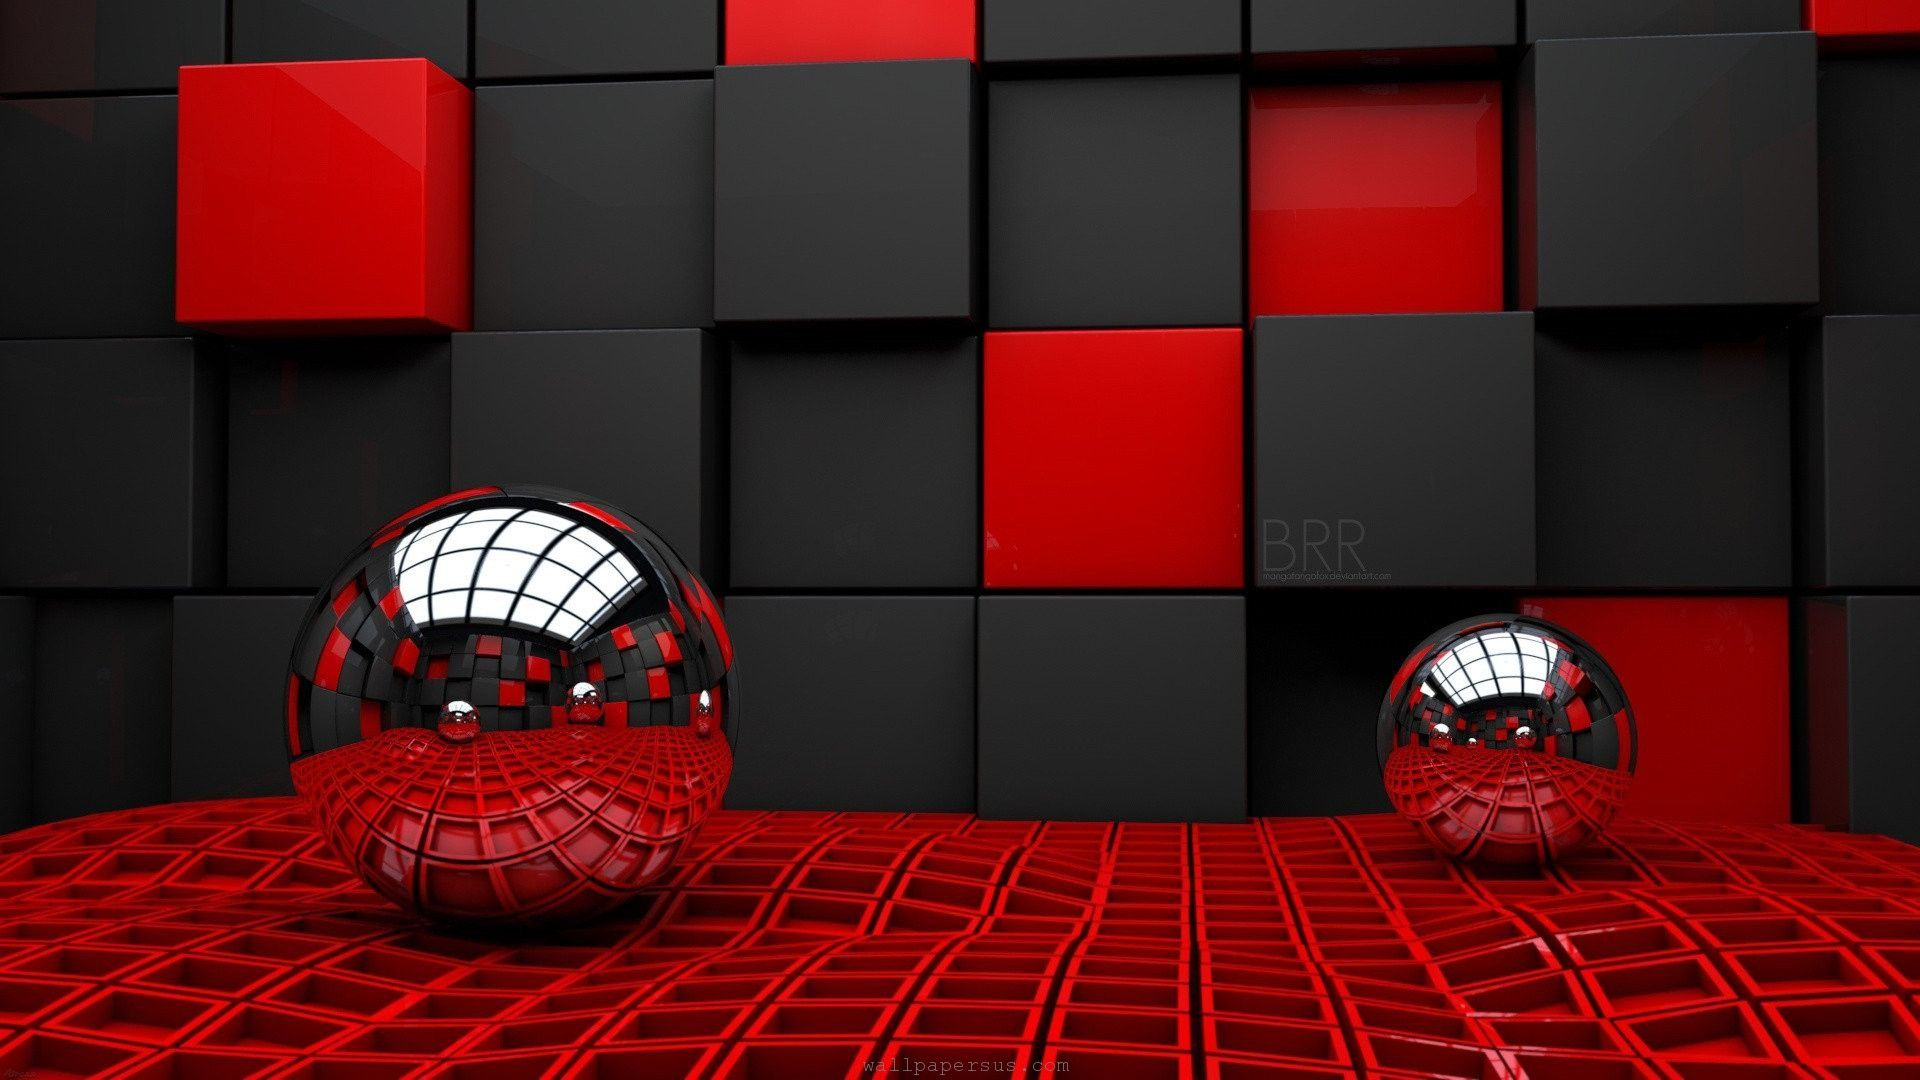 Hd wallpaper red and black - Nothing Found For 3d Red And Black Background Images Hd Wallpapers